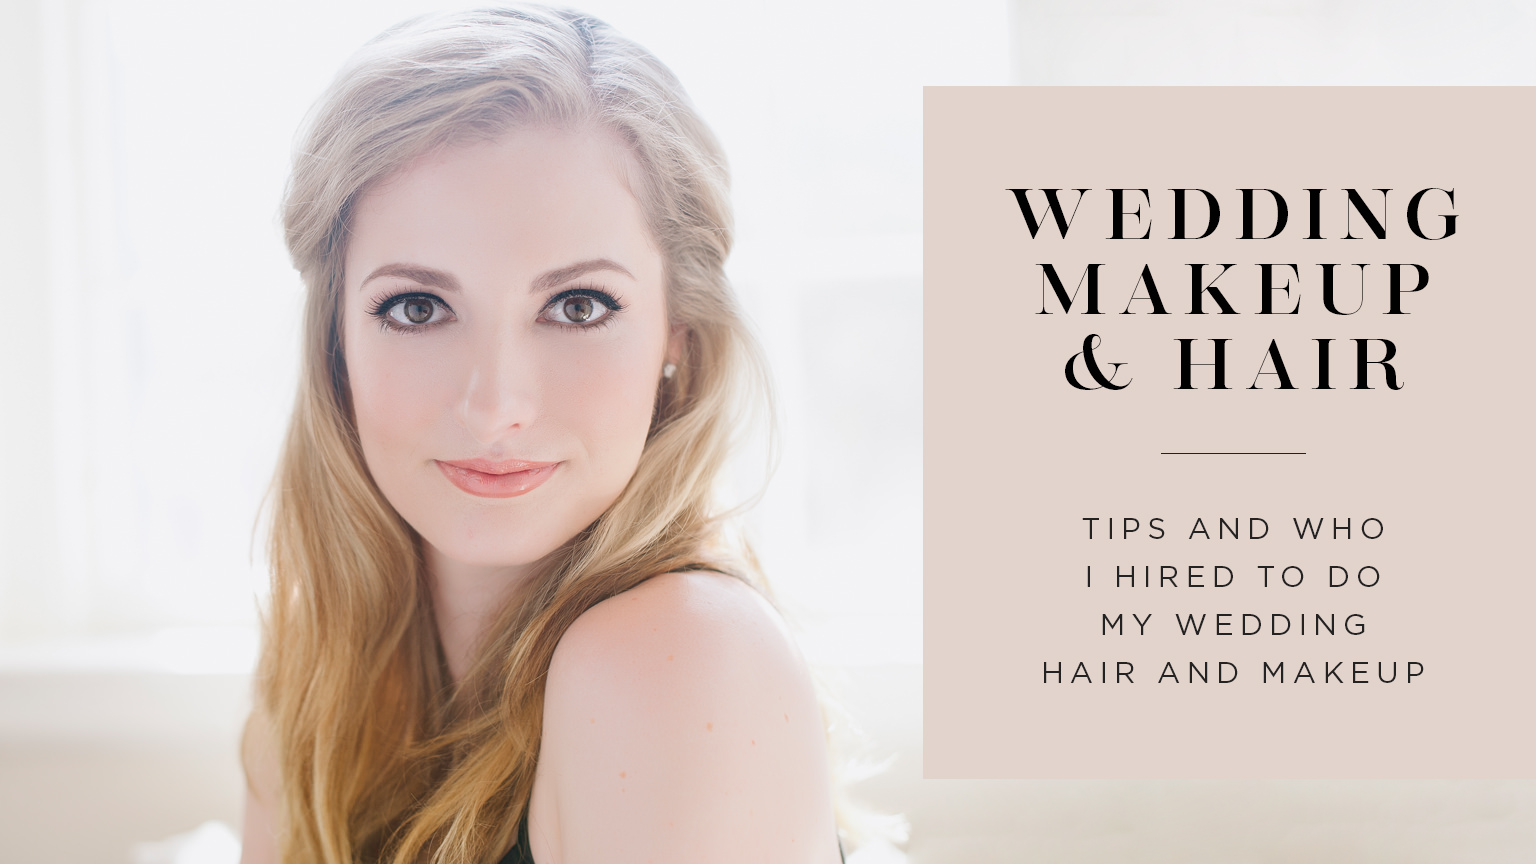 How I Chose My Wedding Hair and Makeup Artist